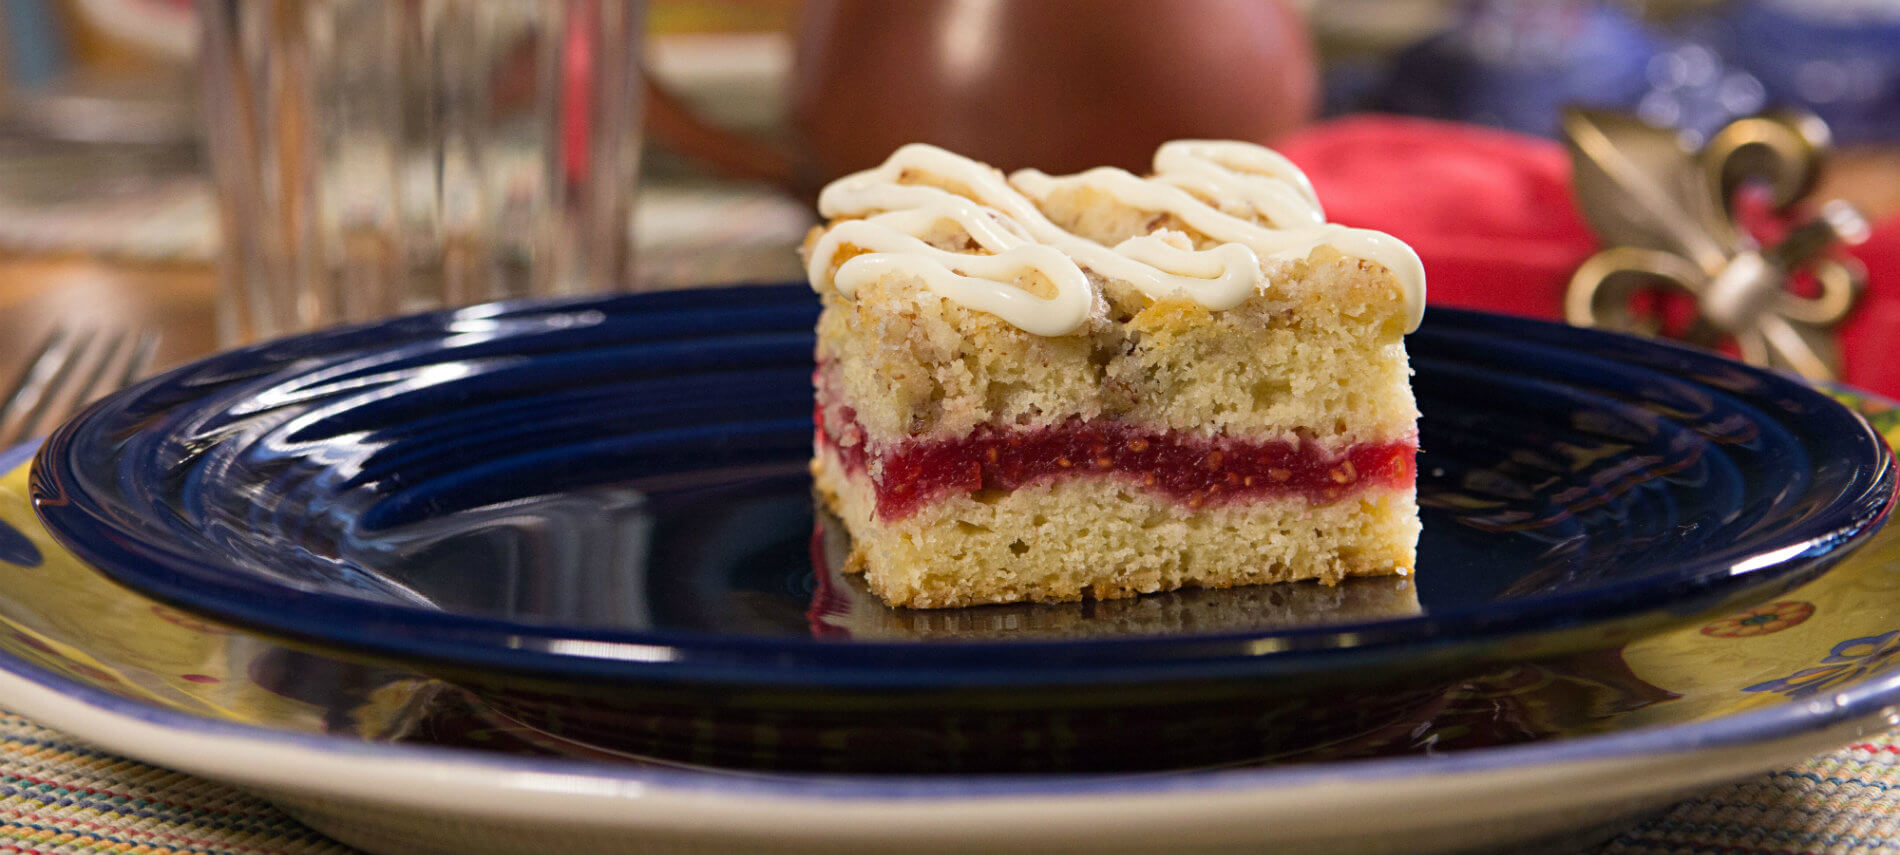 Blue ceramic plate on a colorful ceramic charger topped with a piece of raspberry coffee cake drizzled with icing